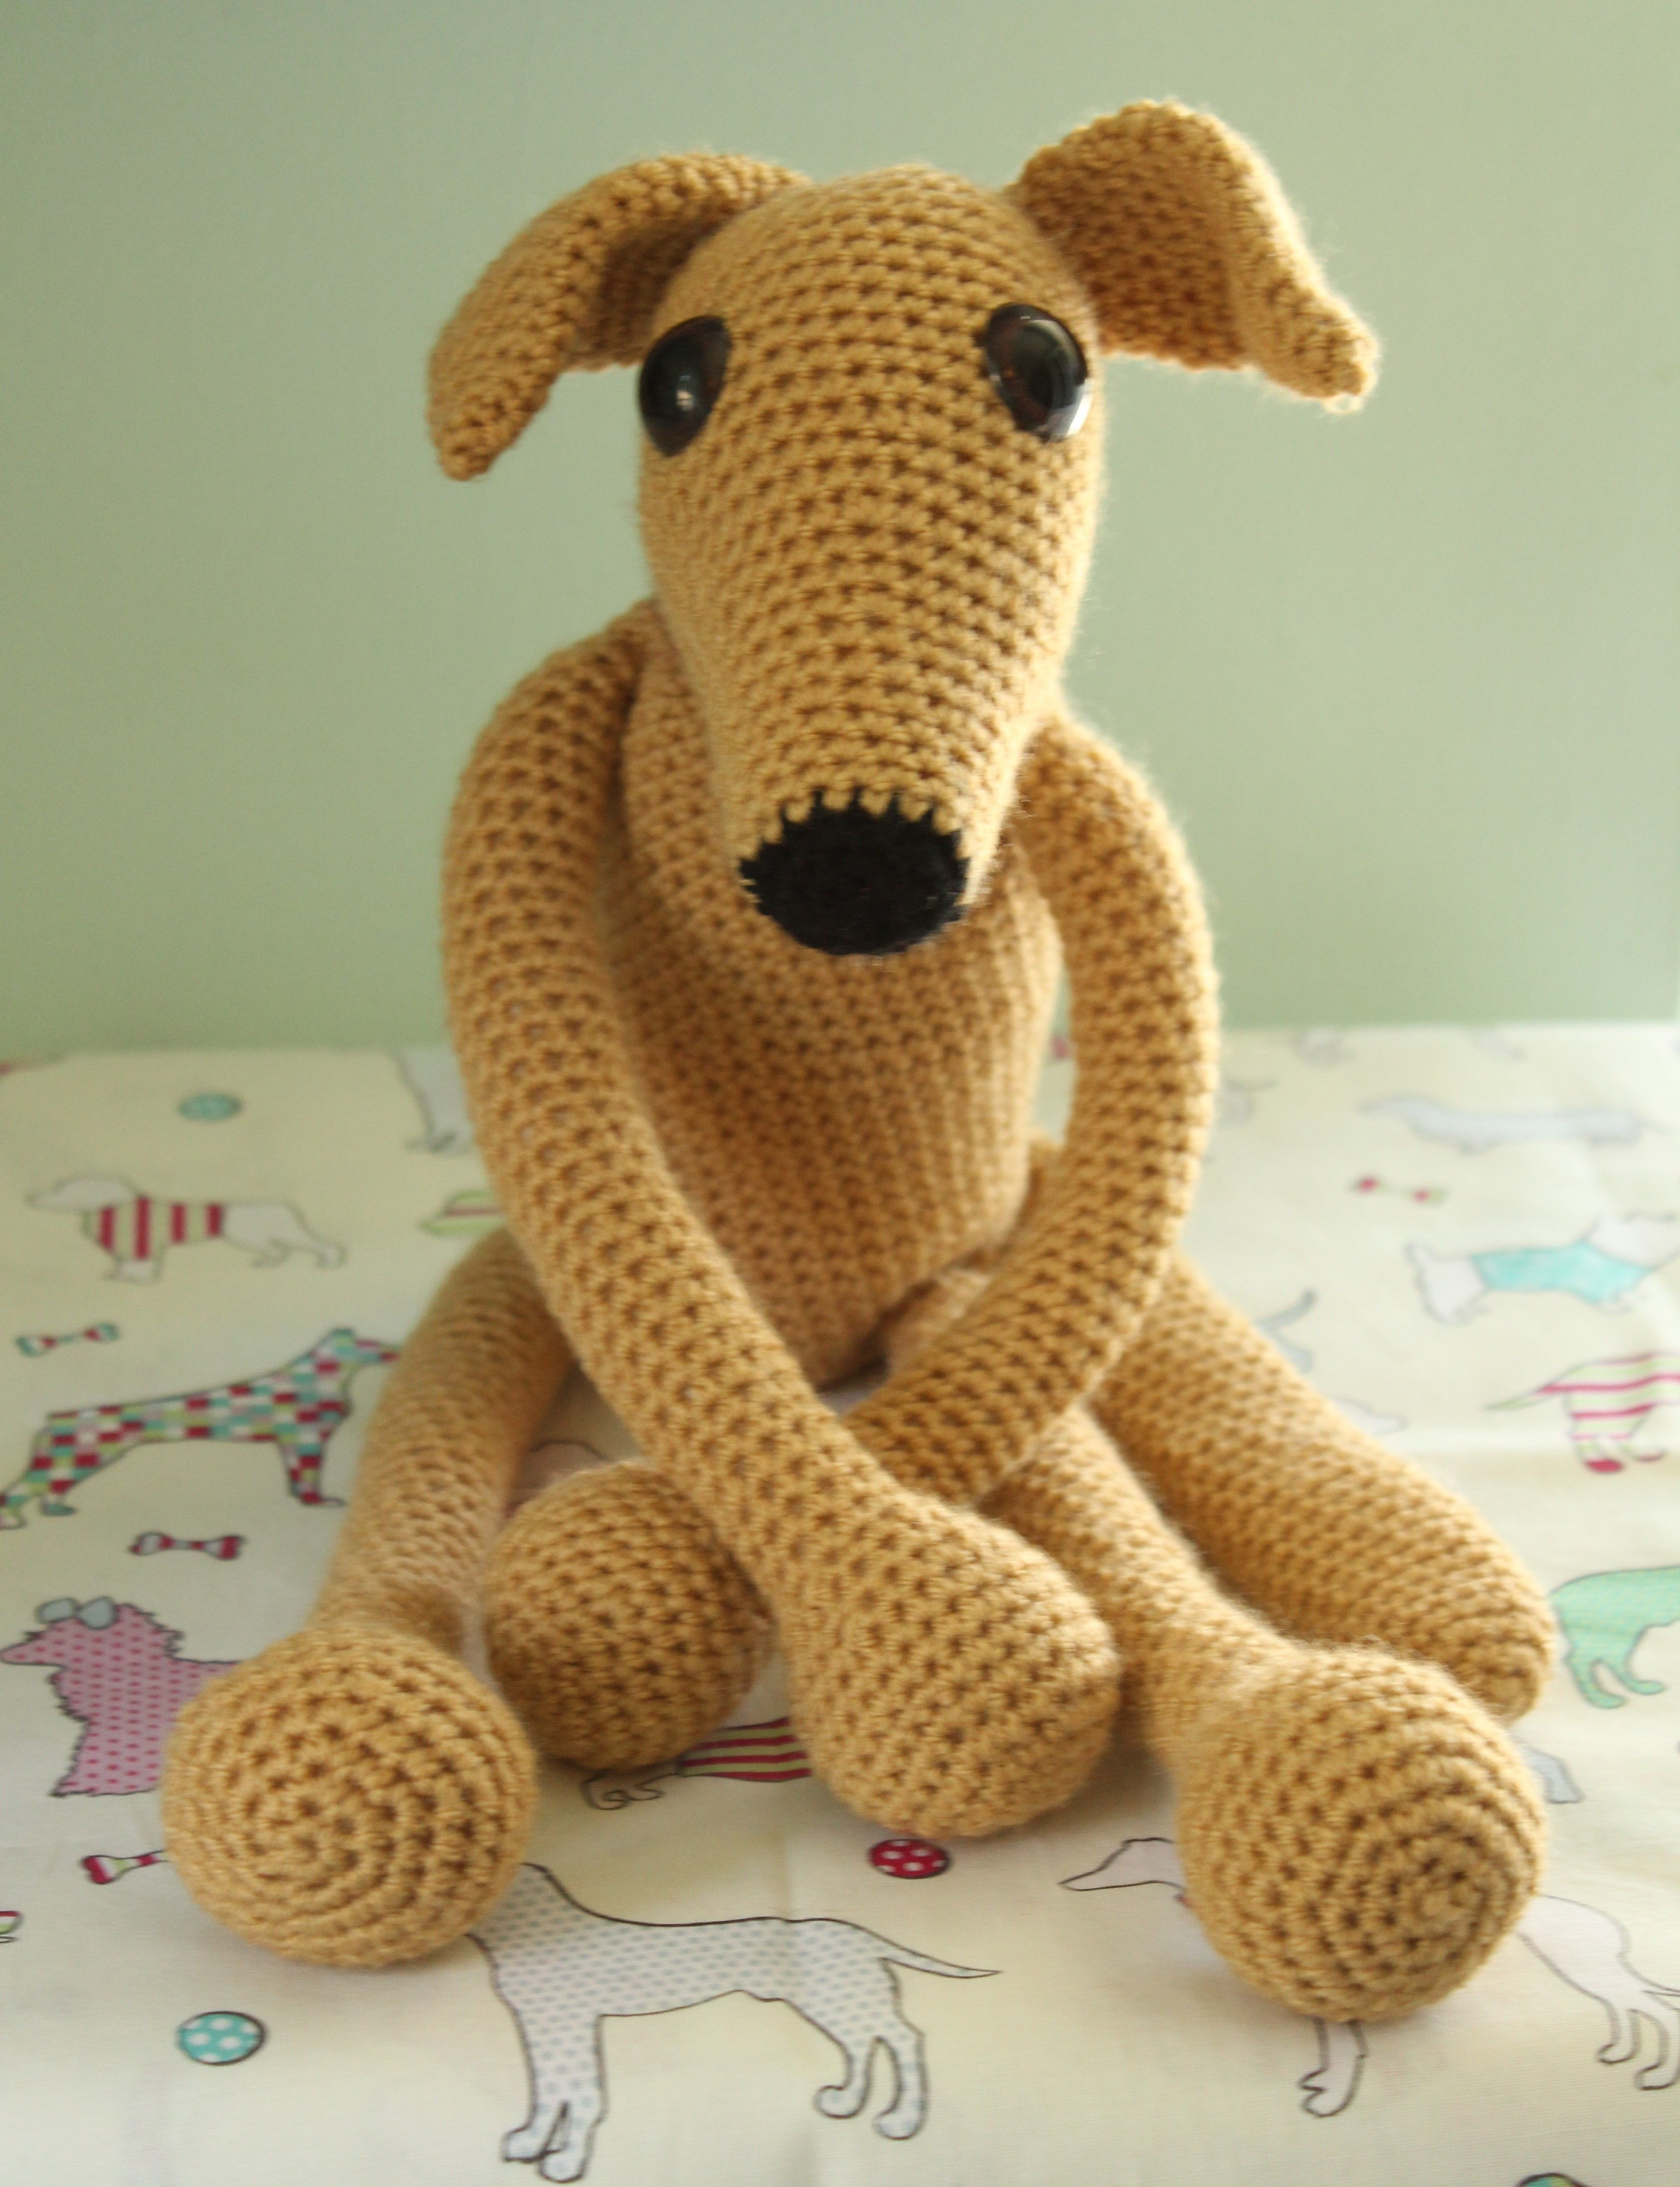 Greyhound whippet sighthound amigurumi crochet my design | crochet ...